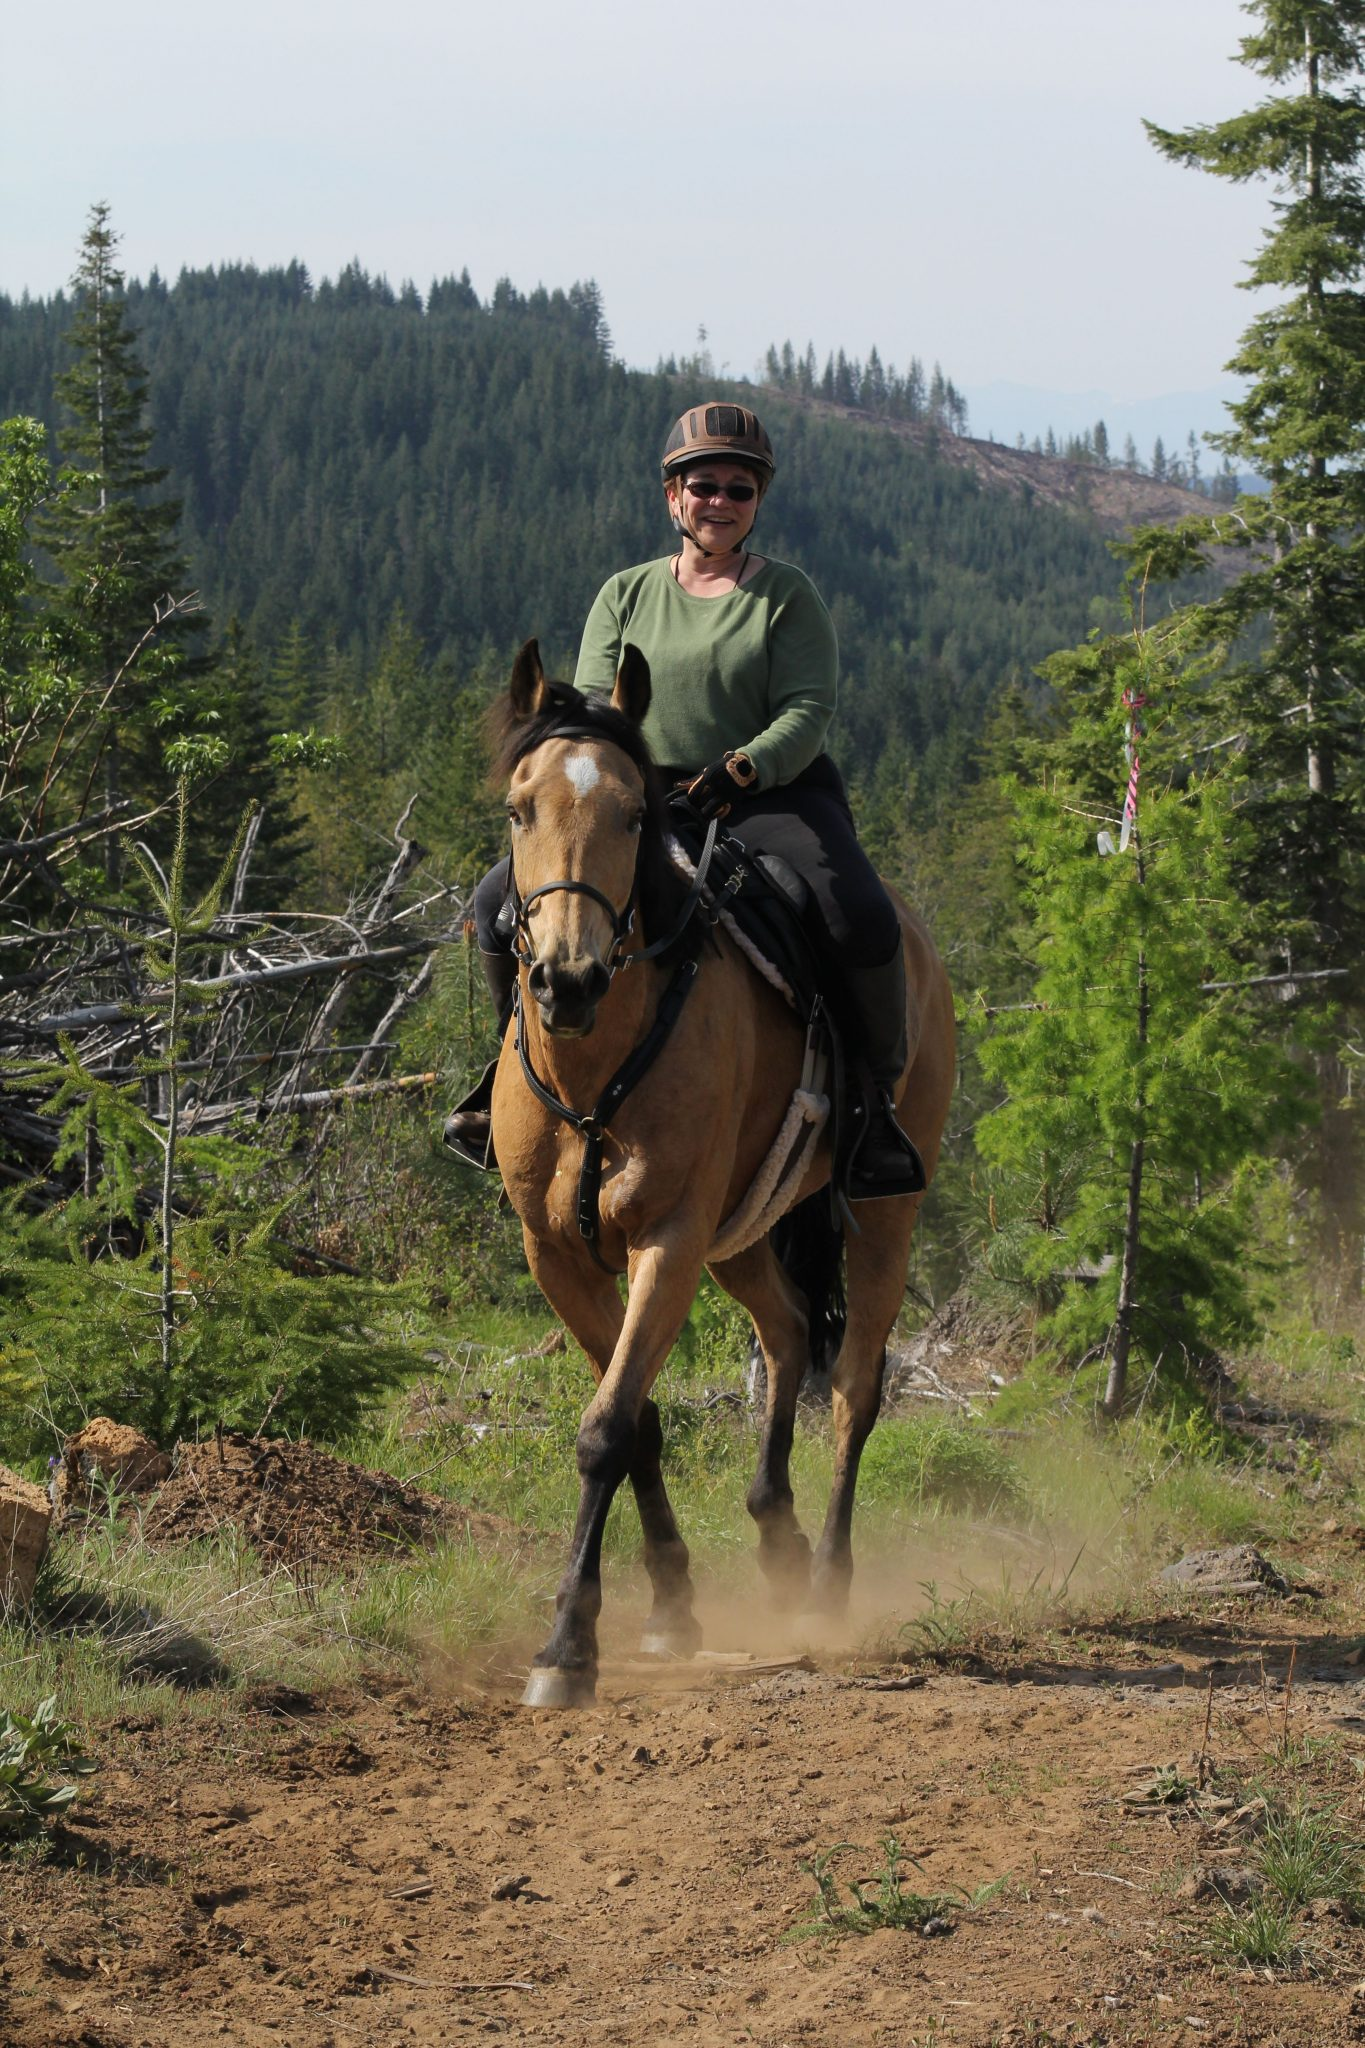 Spring Inspiration: Leadership Lessons from My Horses